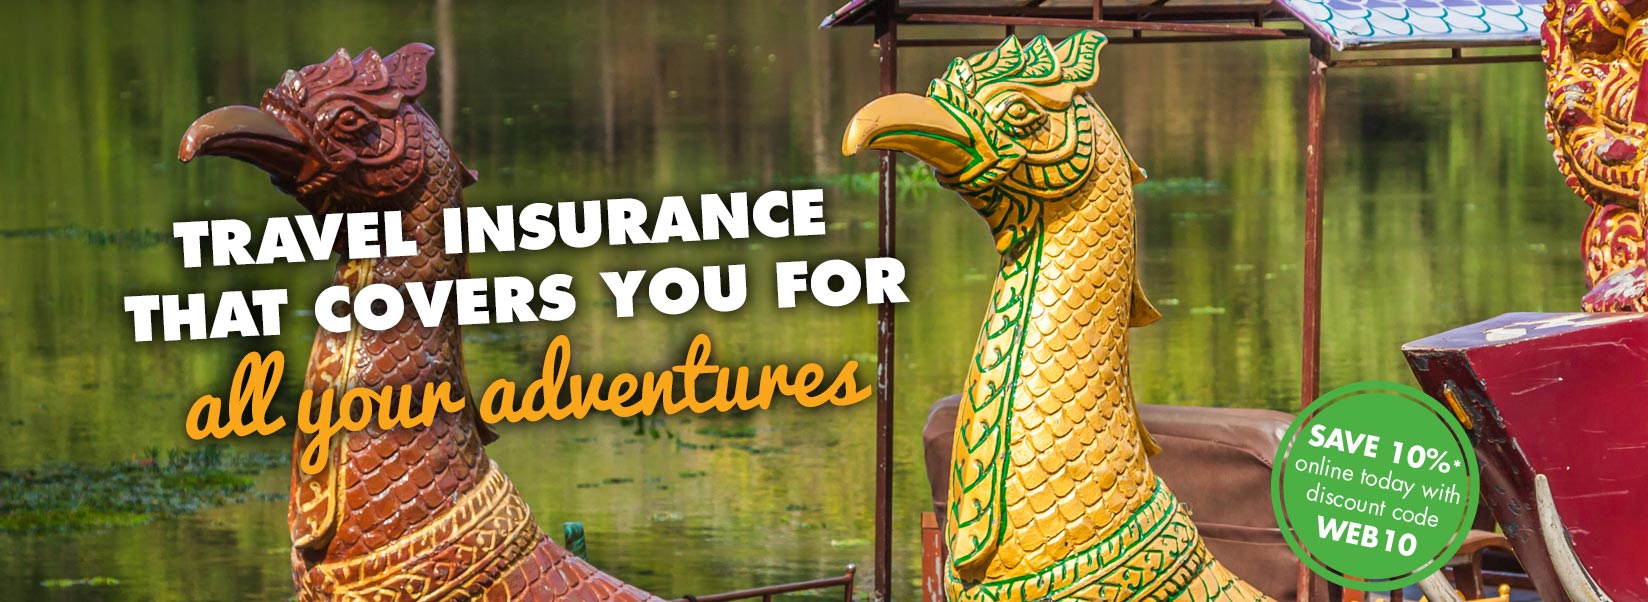 Travel insurance that covers you for all your adventures